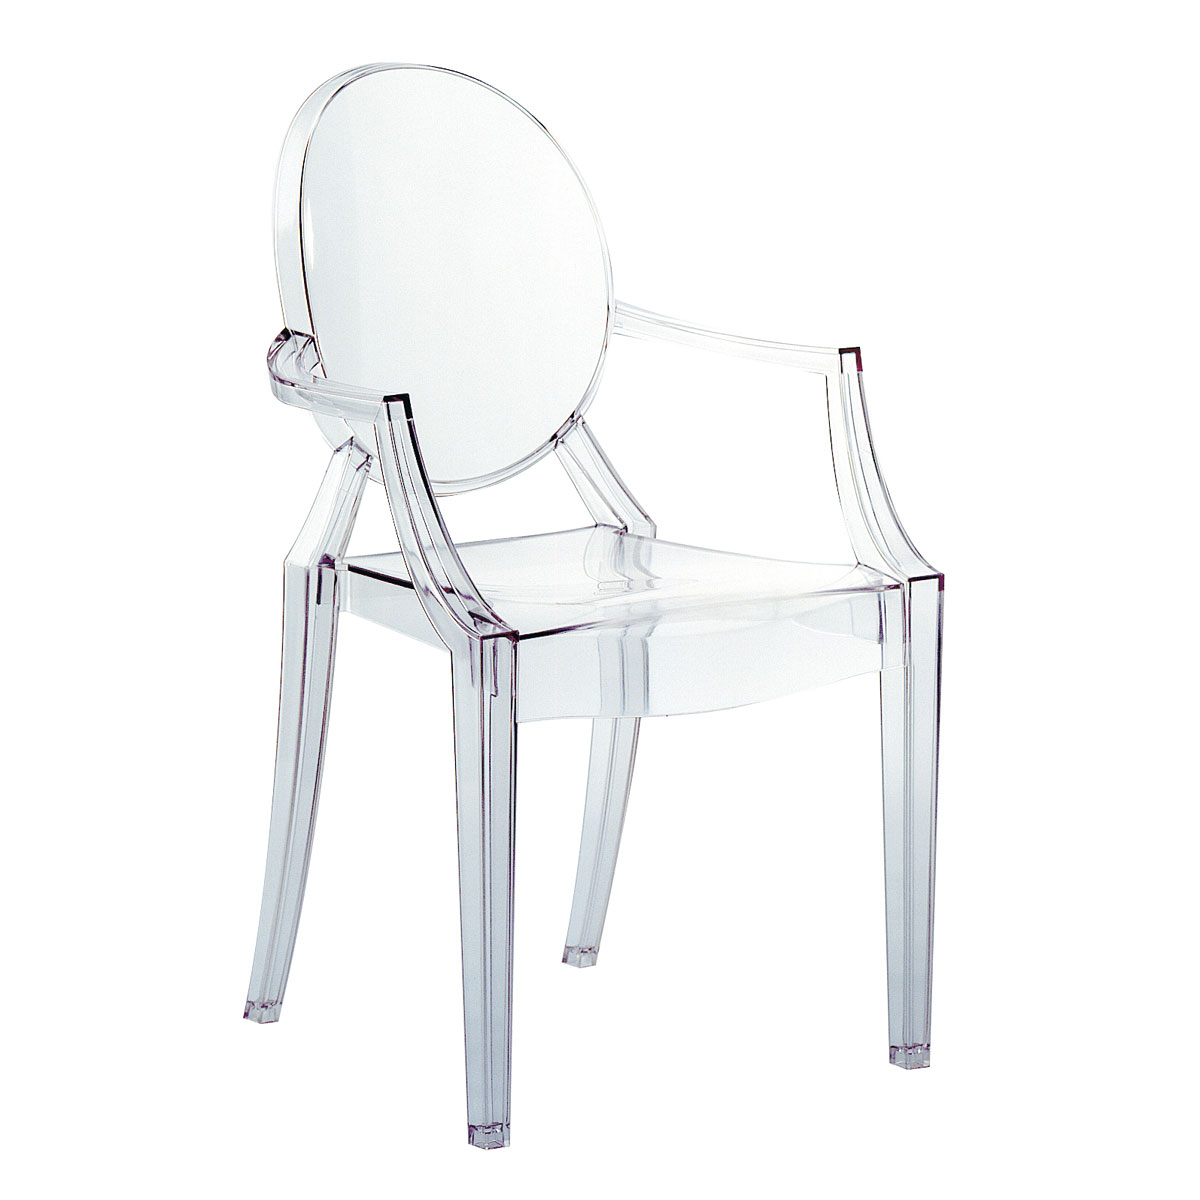 Louis Ghost chair Transparent Glass (4 units packaging)